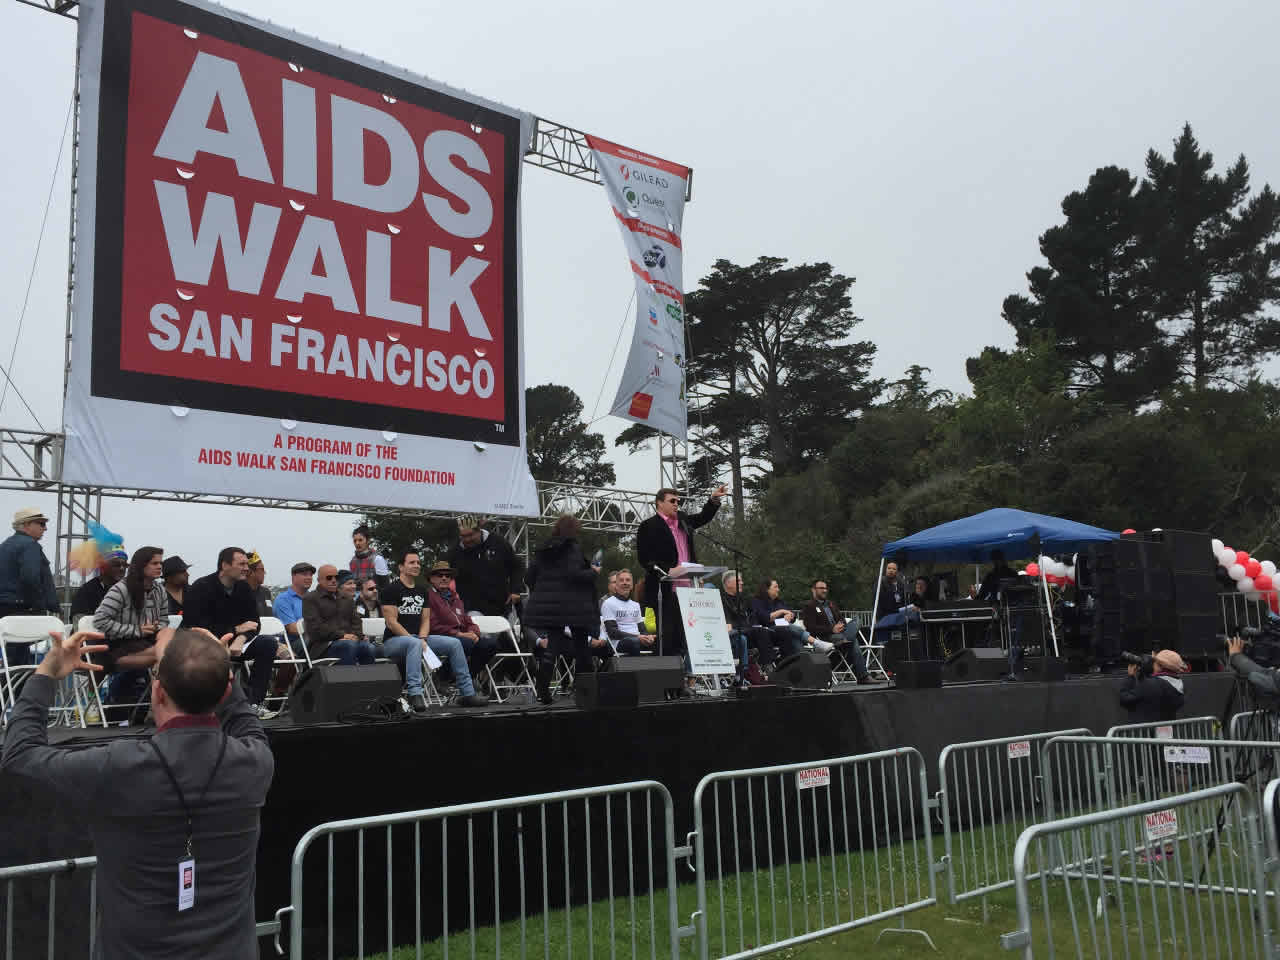 "<div class=""meta image-caption""><div class=""origin-logo origin-image none""><span>none</span></div><span class=""caption-text"">ABC7 News anchor Dan Ashley emcees AIDS Walk San Francisco on Sunday, July 17, 2016. (KGO-TV)</span></div>"